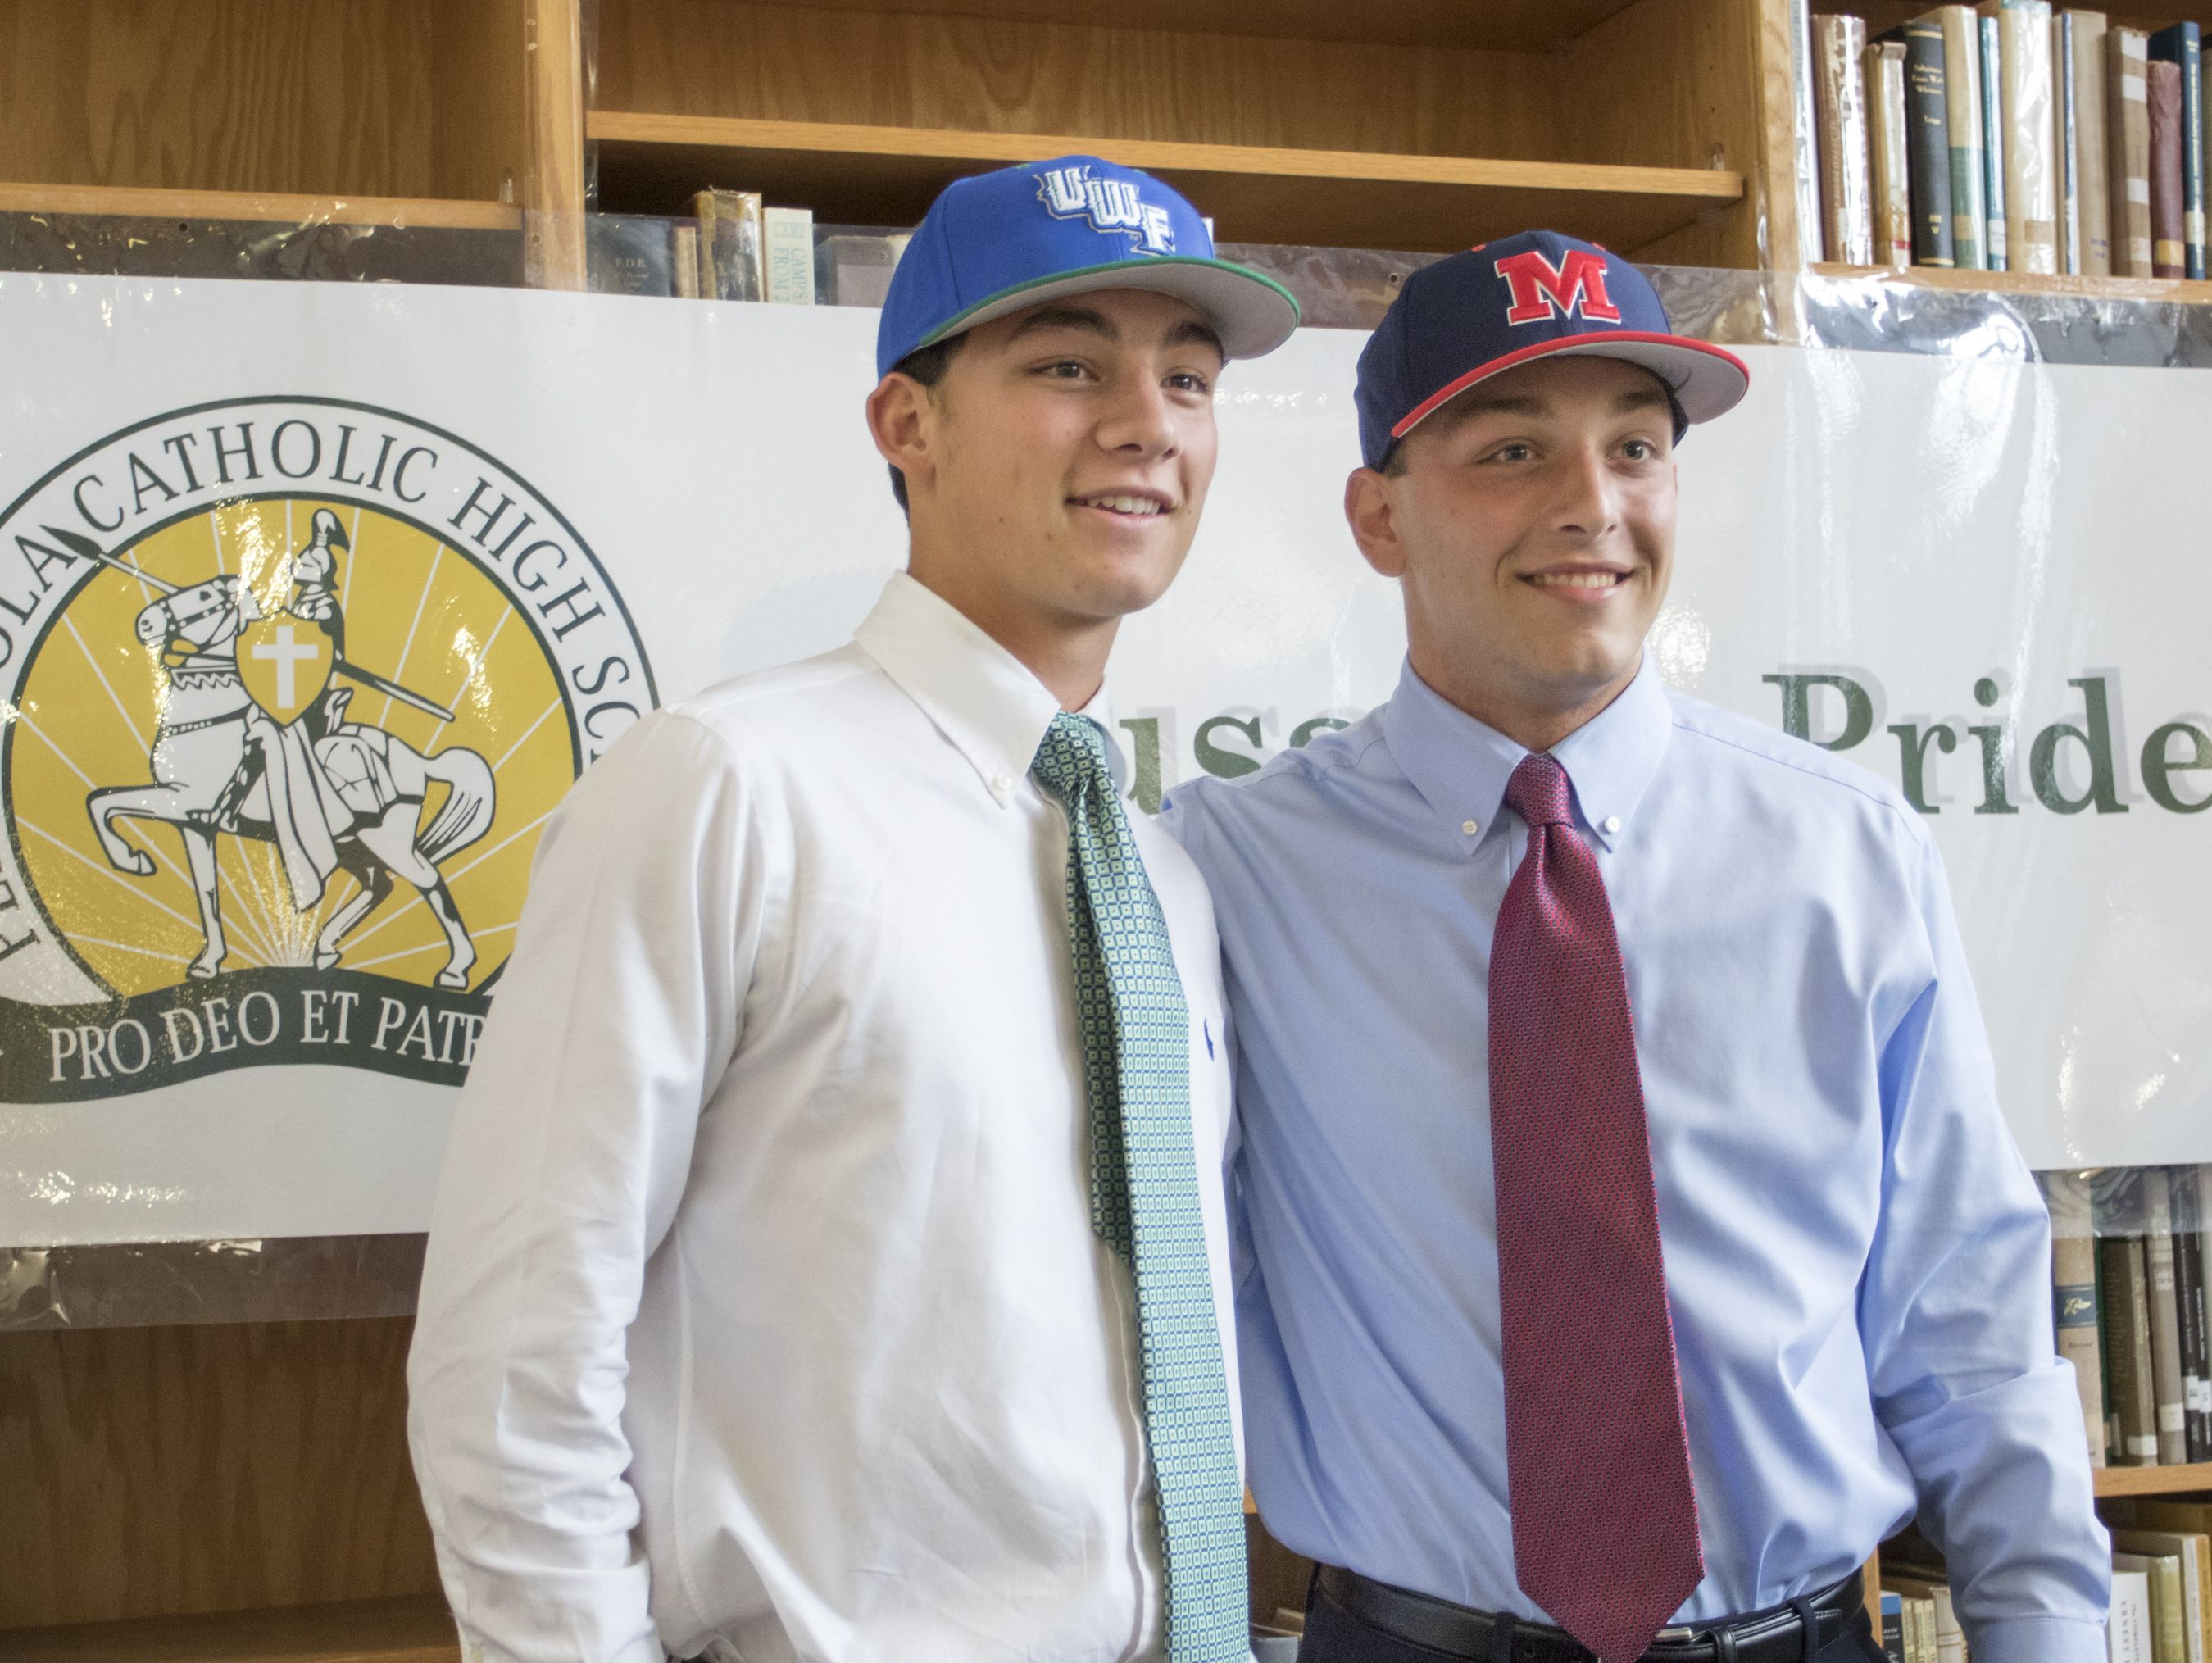 Athletes Matthew Estrada (University of West Florida), left, and Carl Gindl (University of Mississippi) sport hats after signing letters of intent to play baseball for their respective colleges during a press conference at Catholic High School in Pensacola on Wednesday, November 9, 2016.